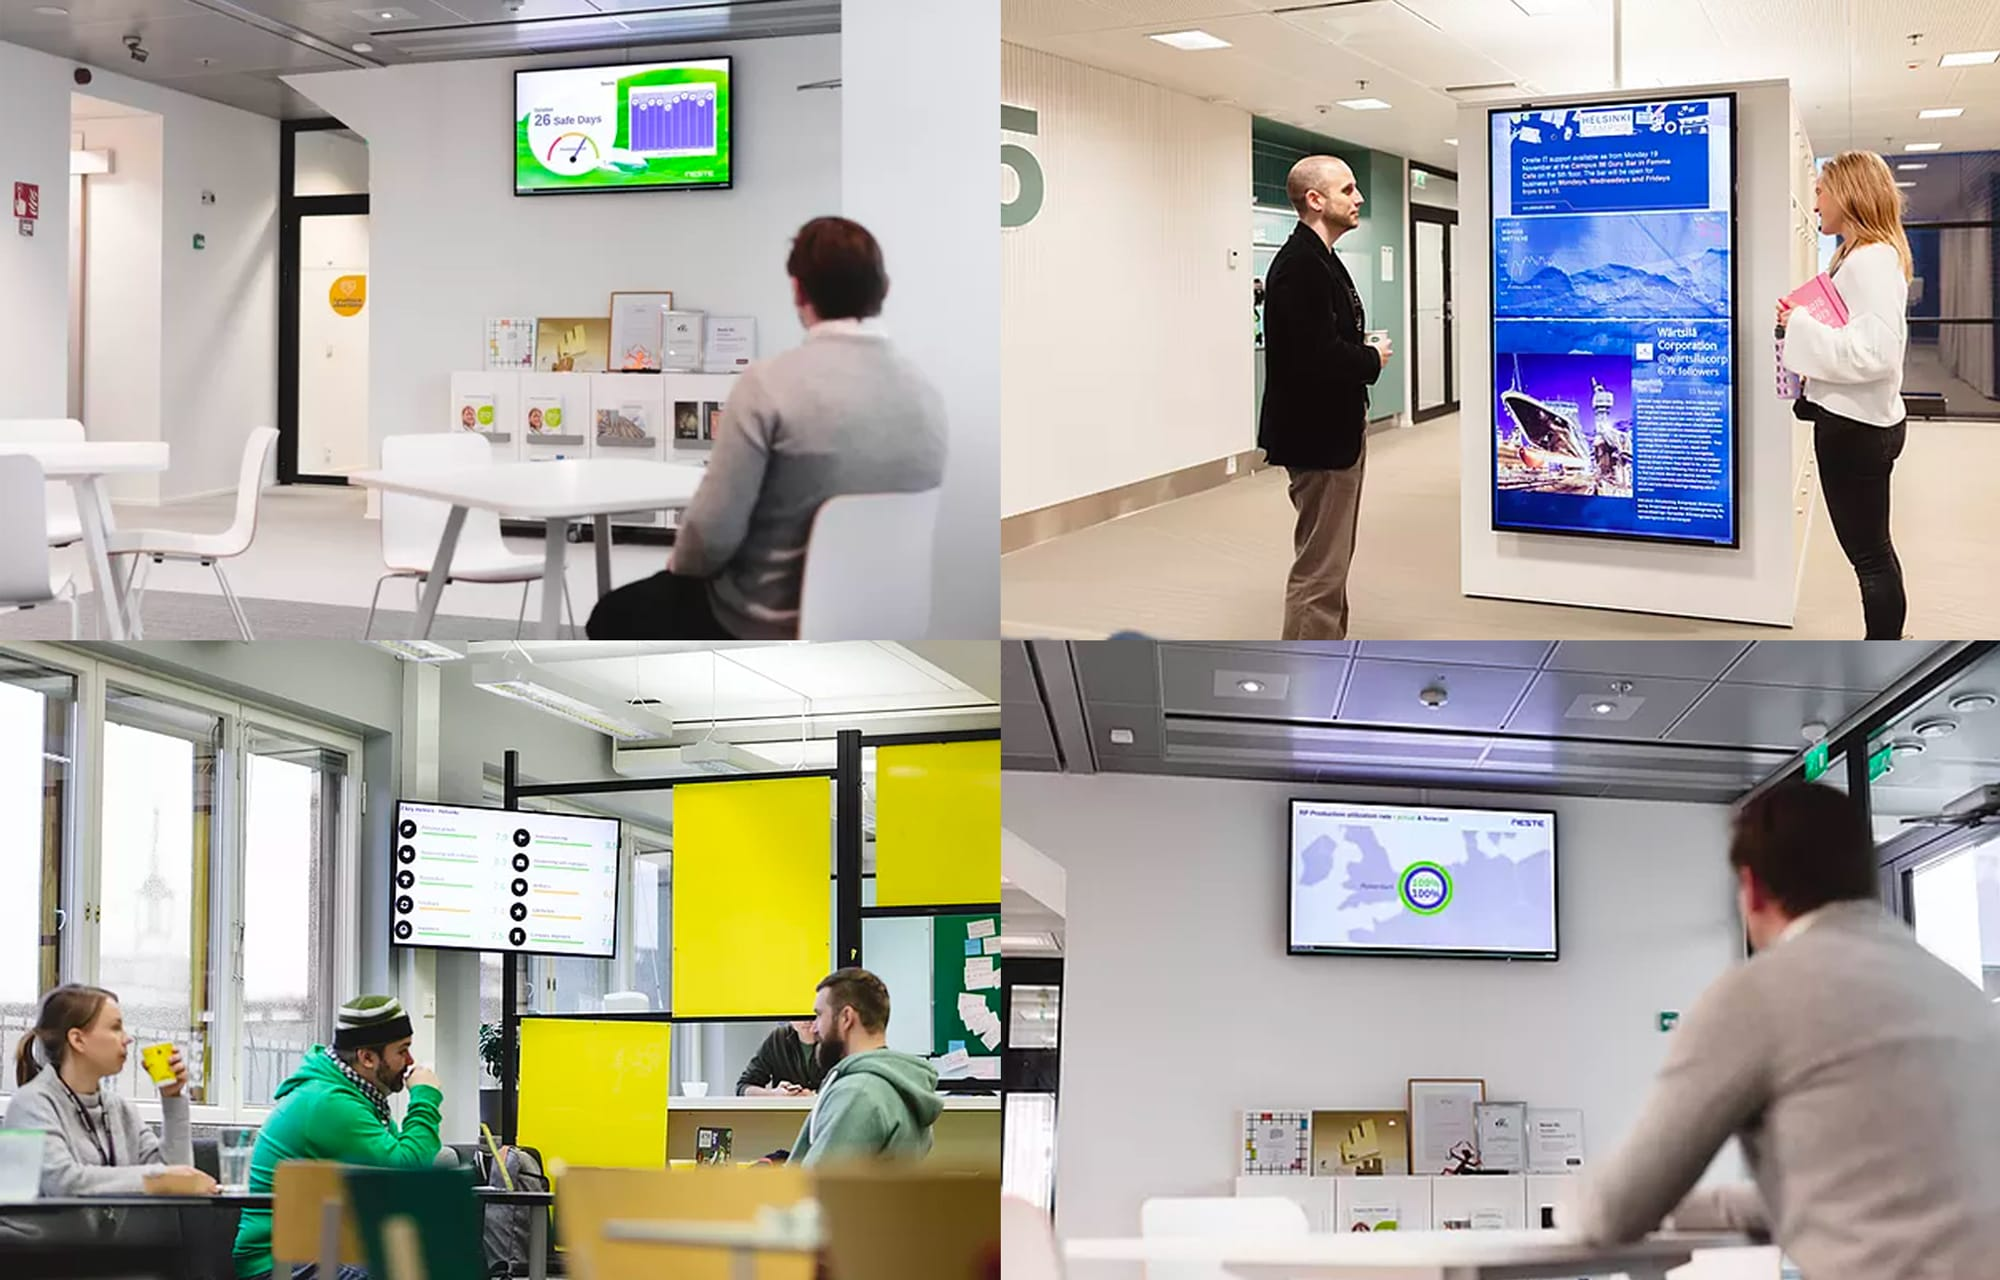 Four panel view of digital signage in different rooms of the workplace.